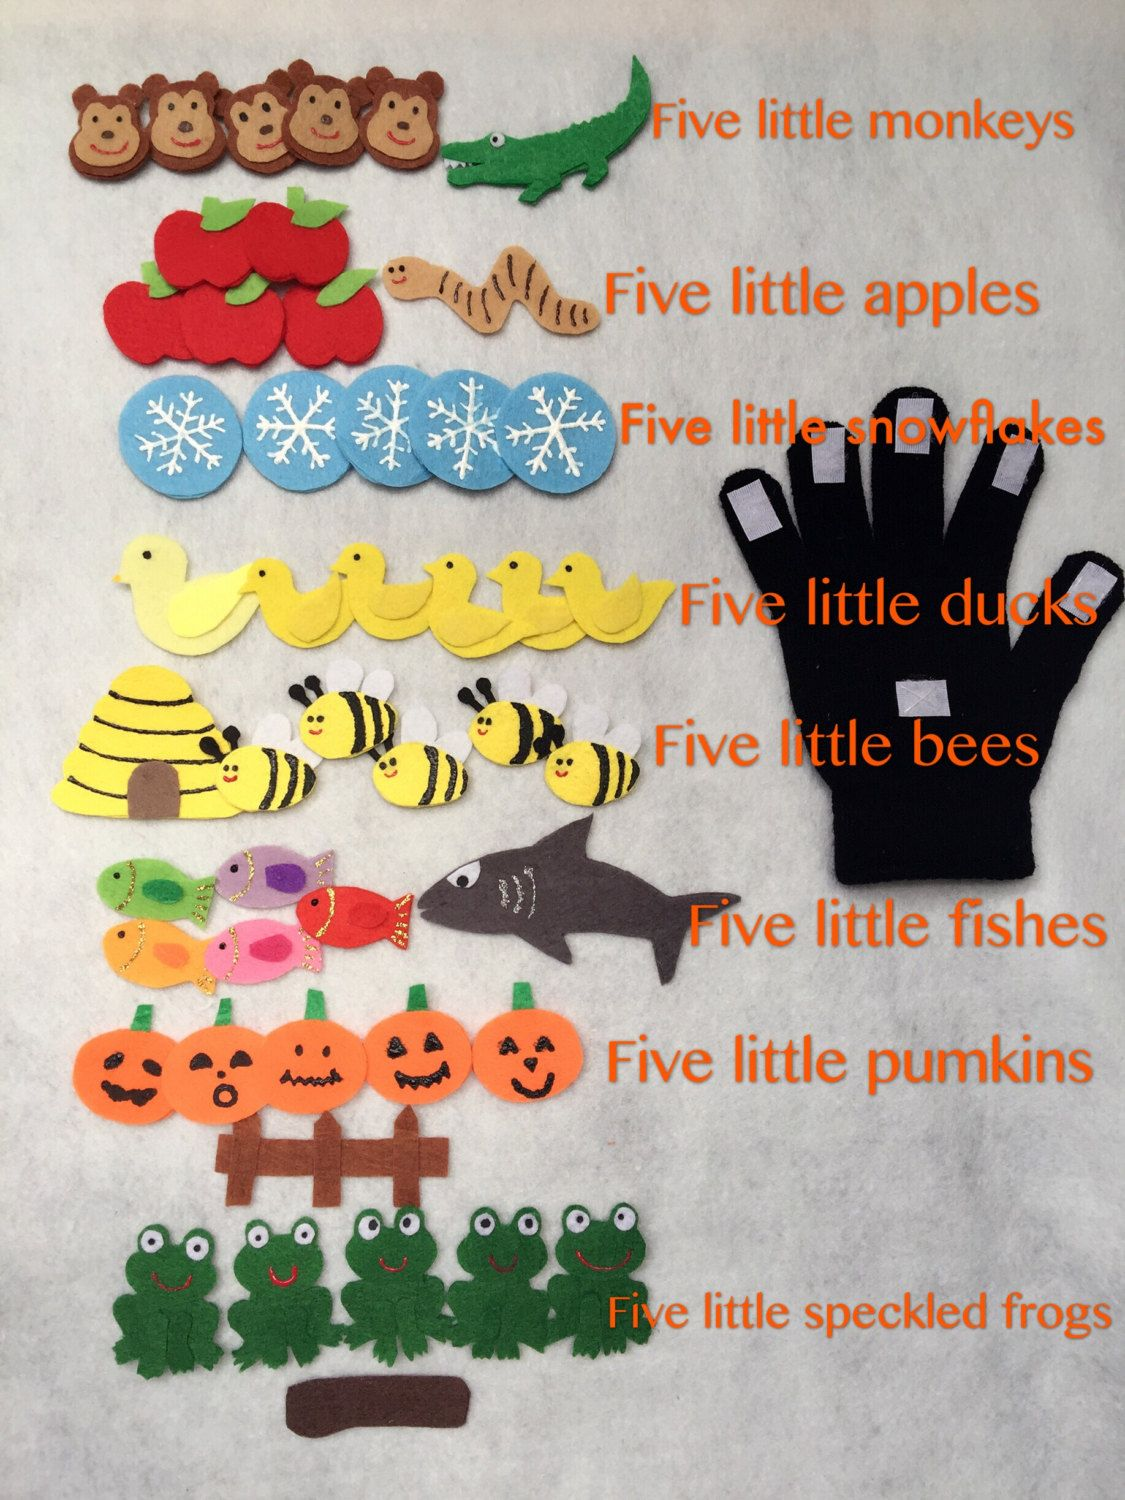 Five Little Pumpkins Bees Snowflakes Speckled Frogs Fishes Monkeys Ducks Apples Old Mcdonald Had